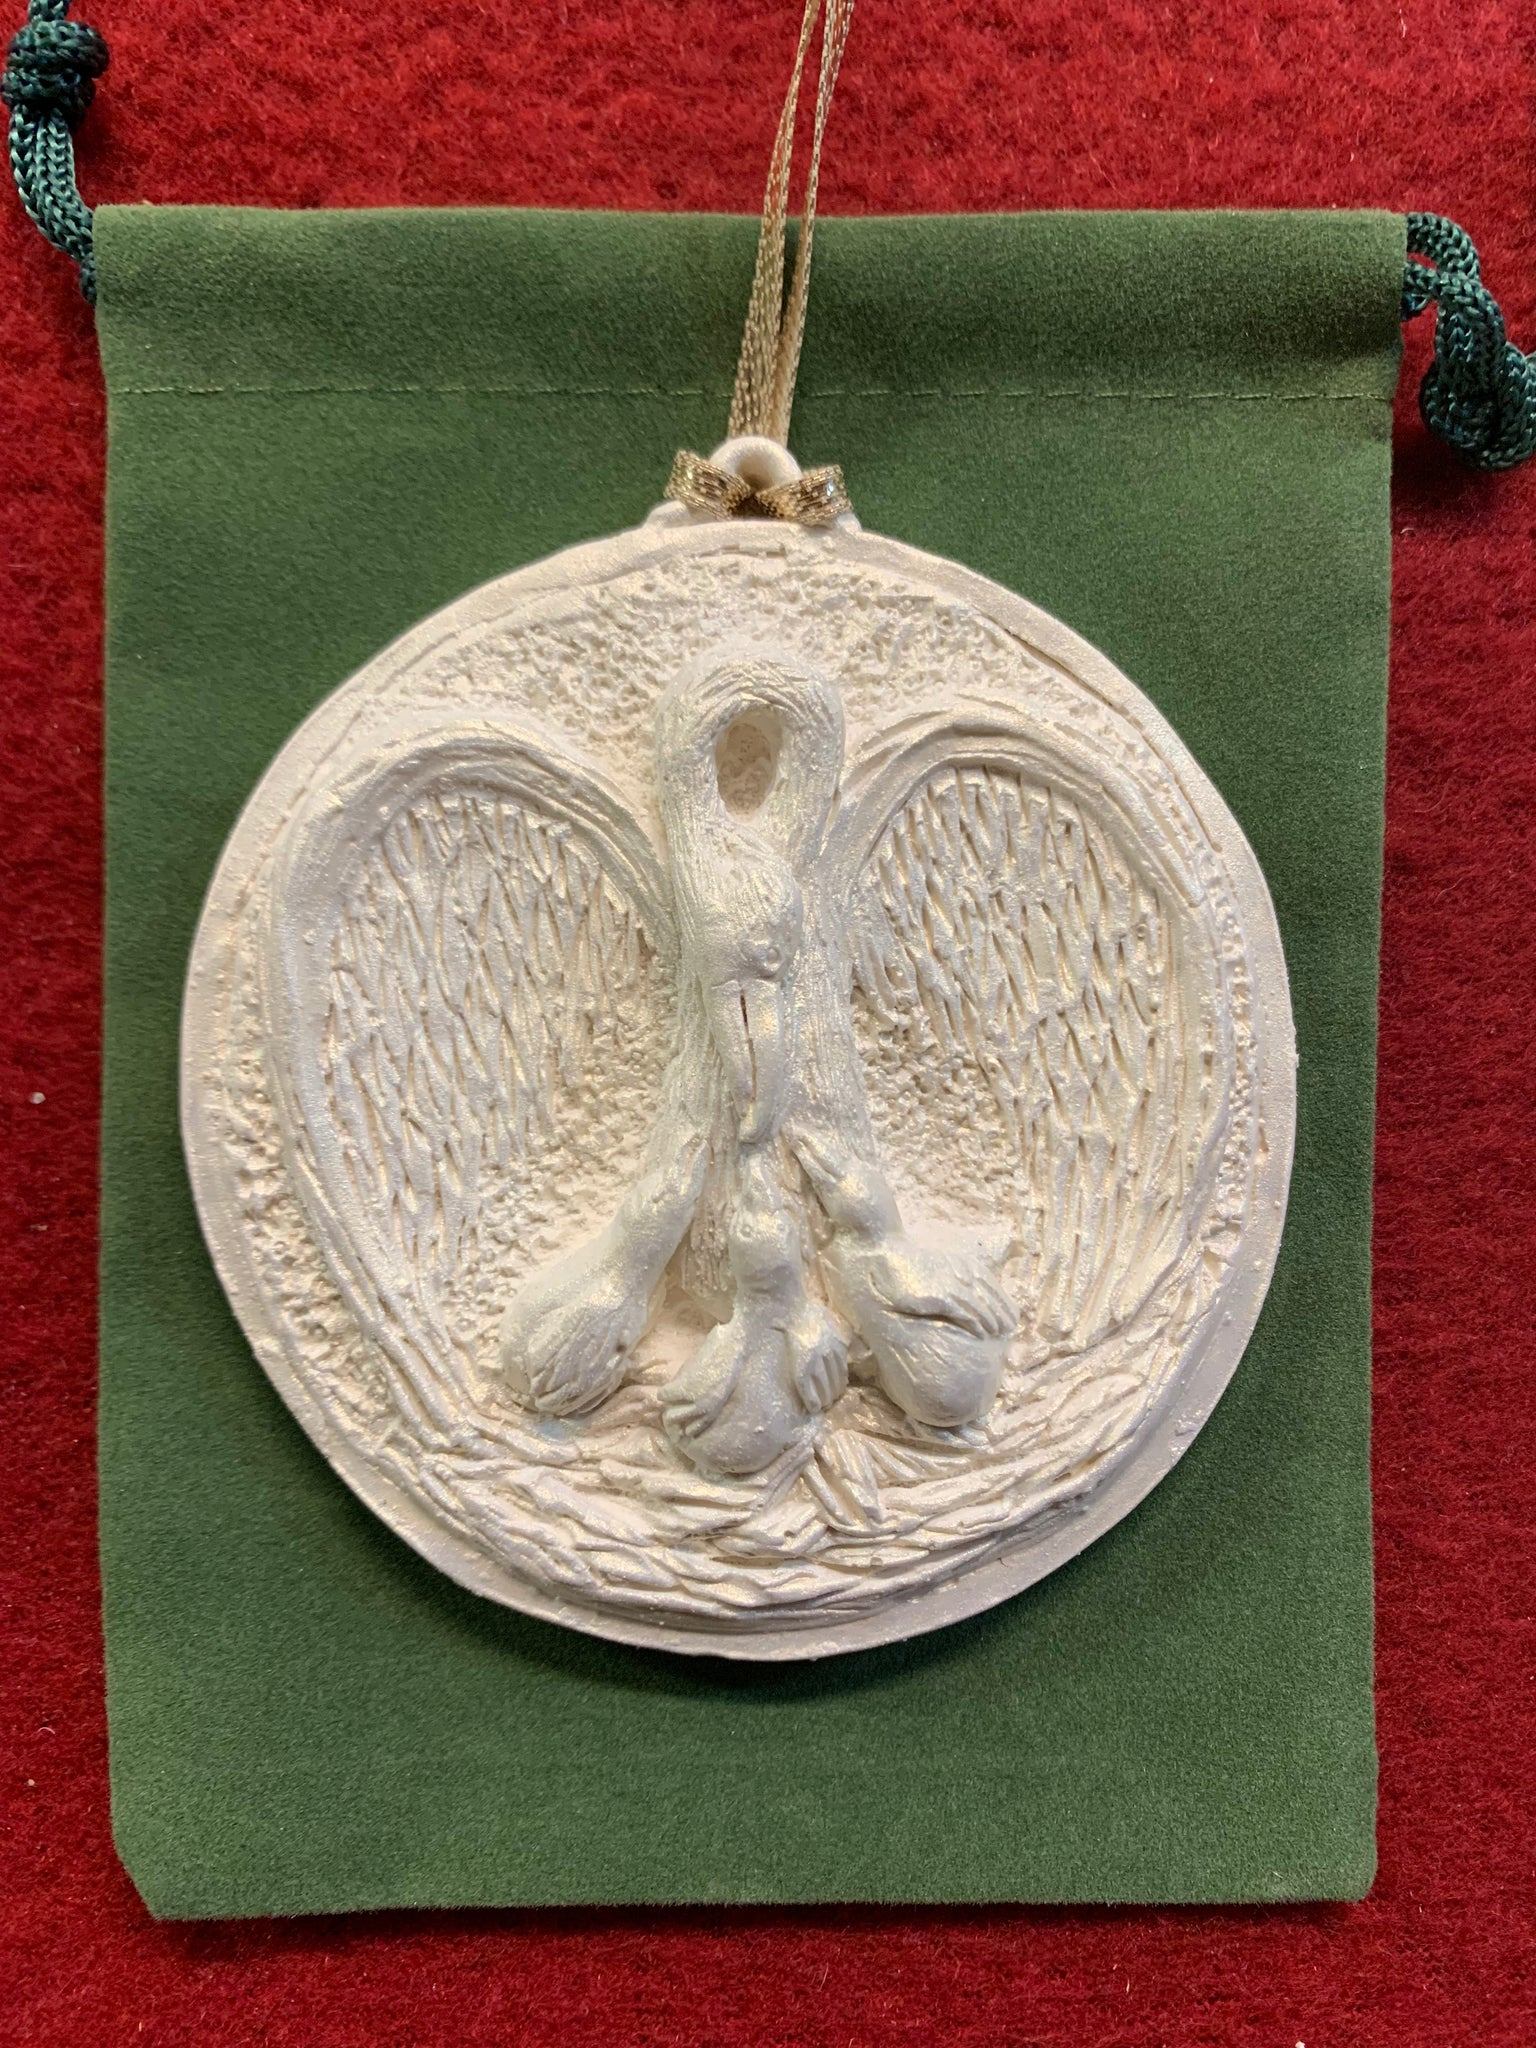 2019 Golden White Pelican Ornament